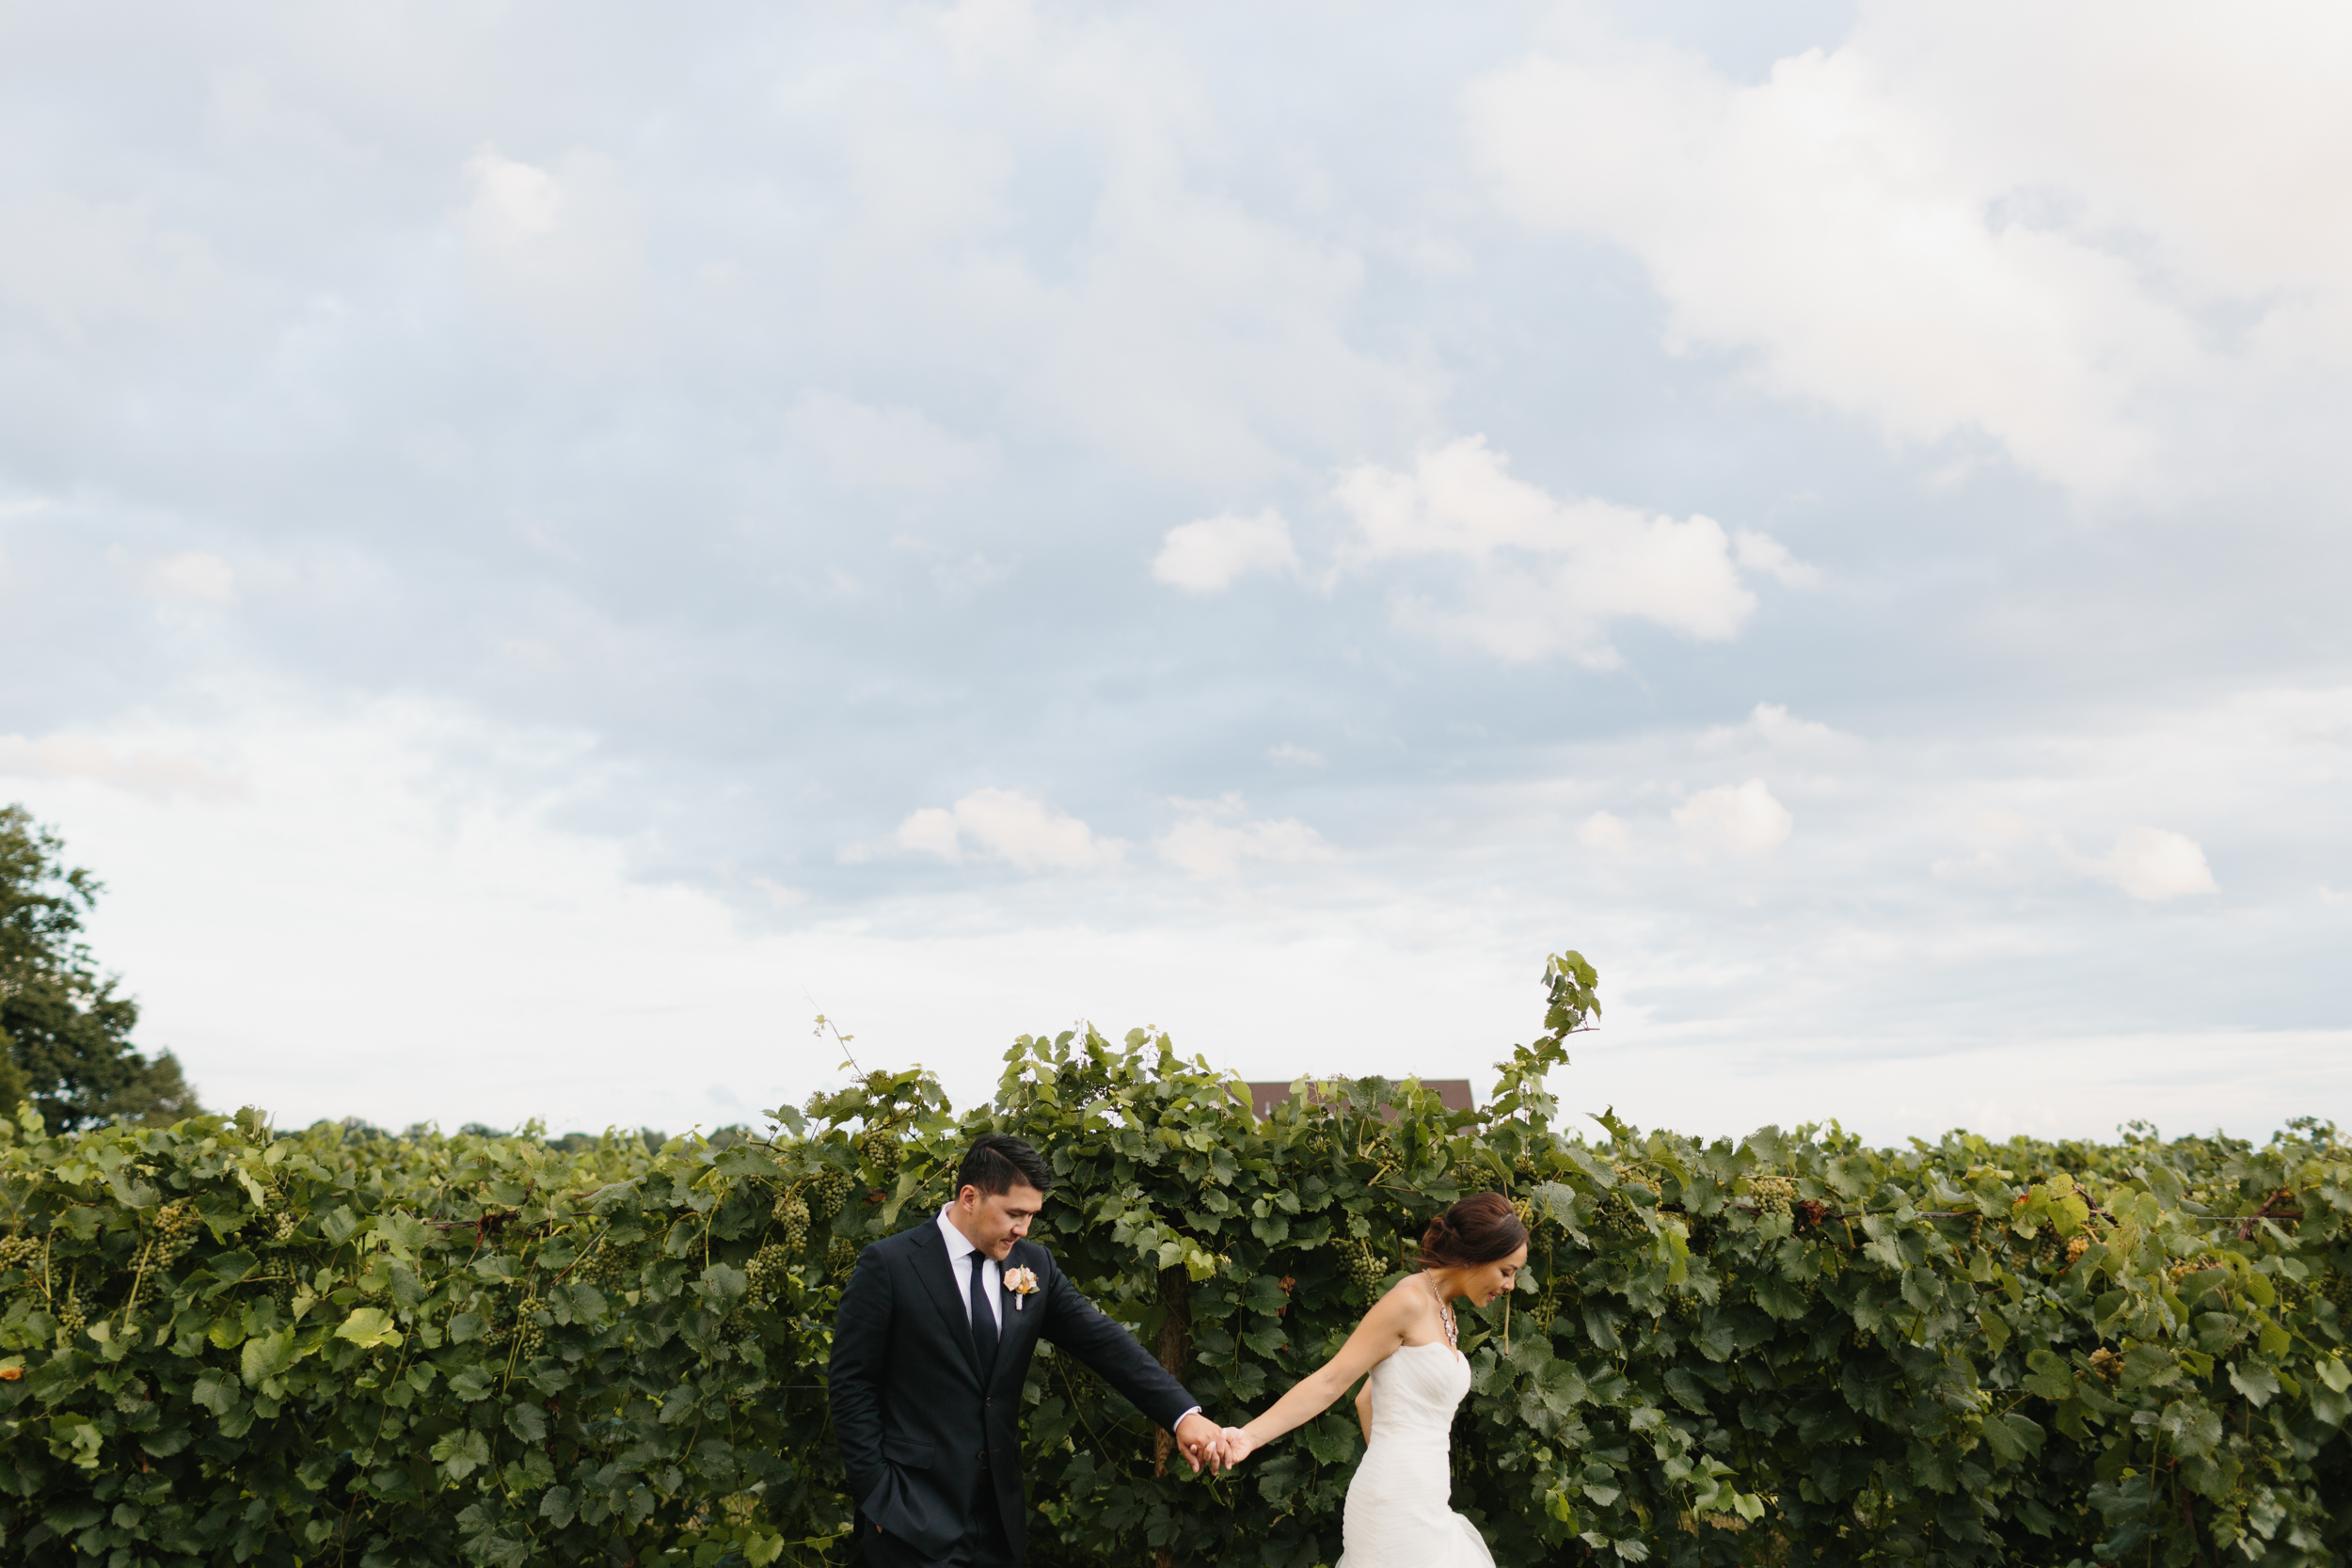 Mae Stier Michigan and Destination Wedding Photographer -084.jpg